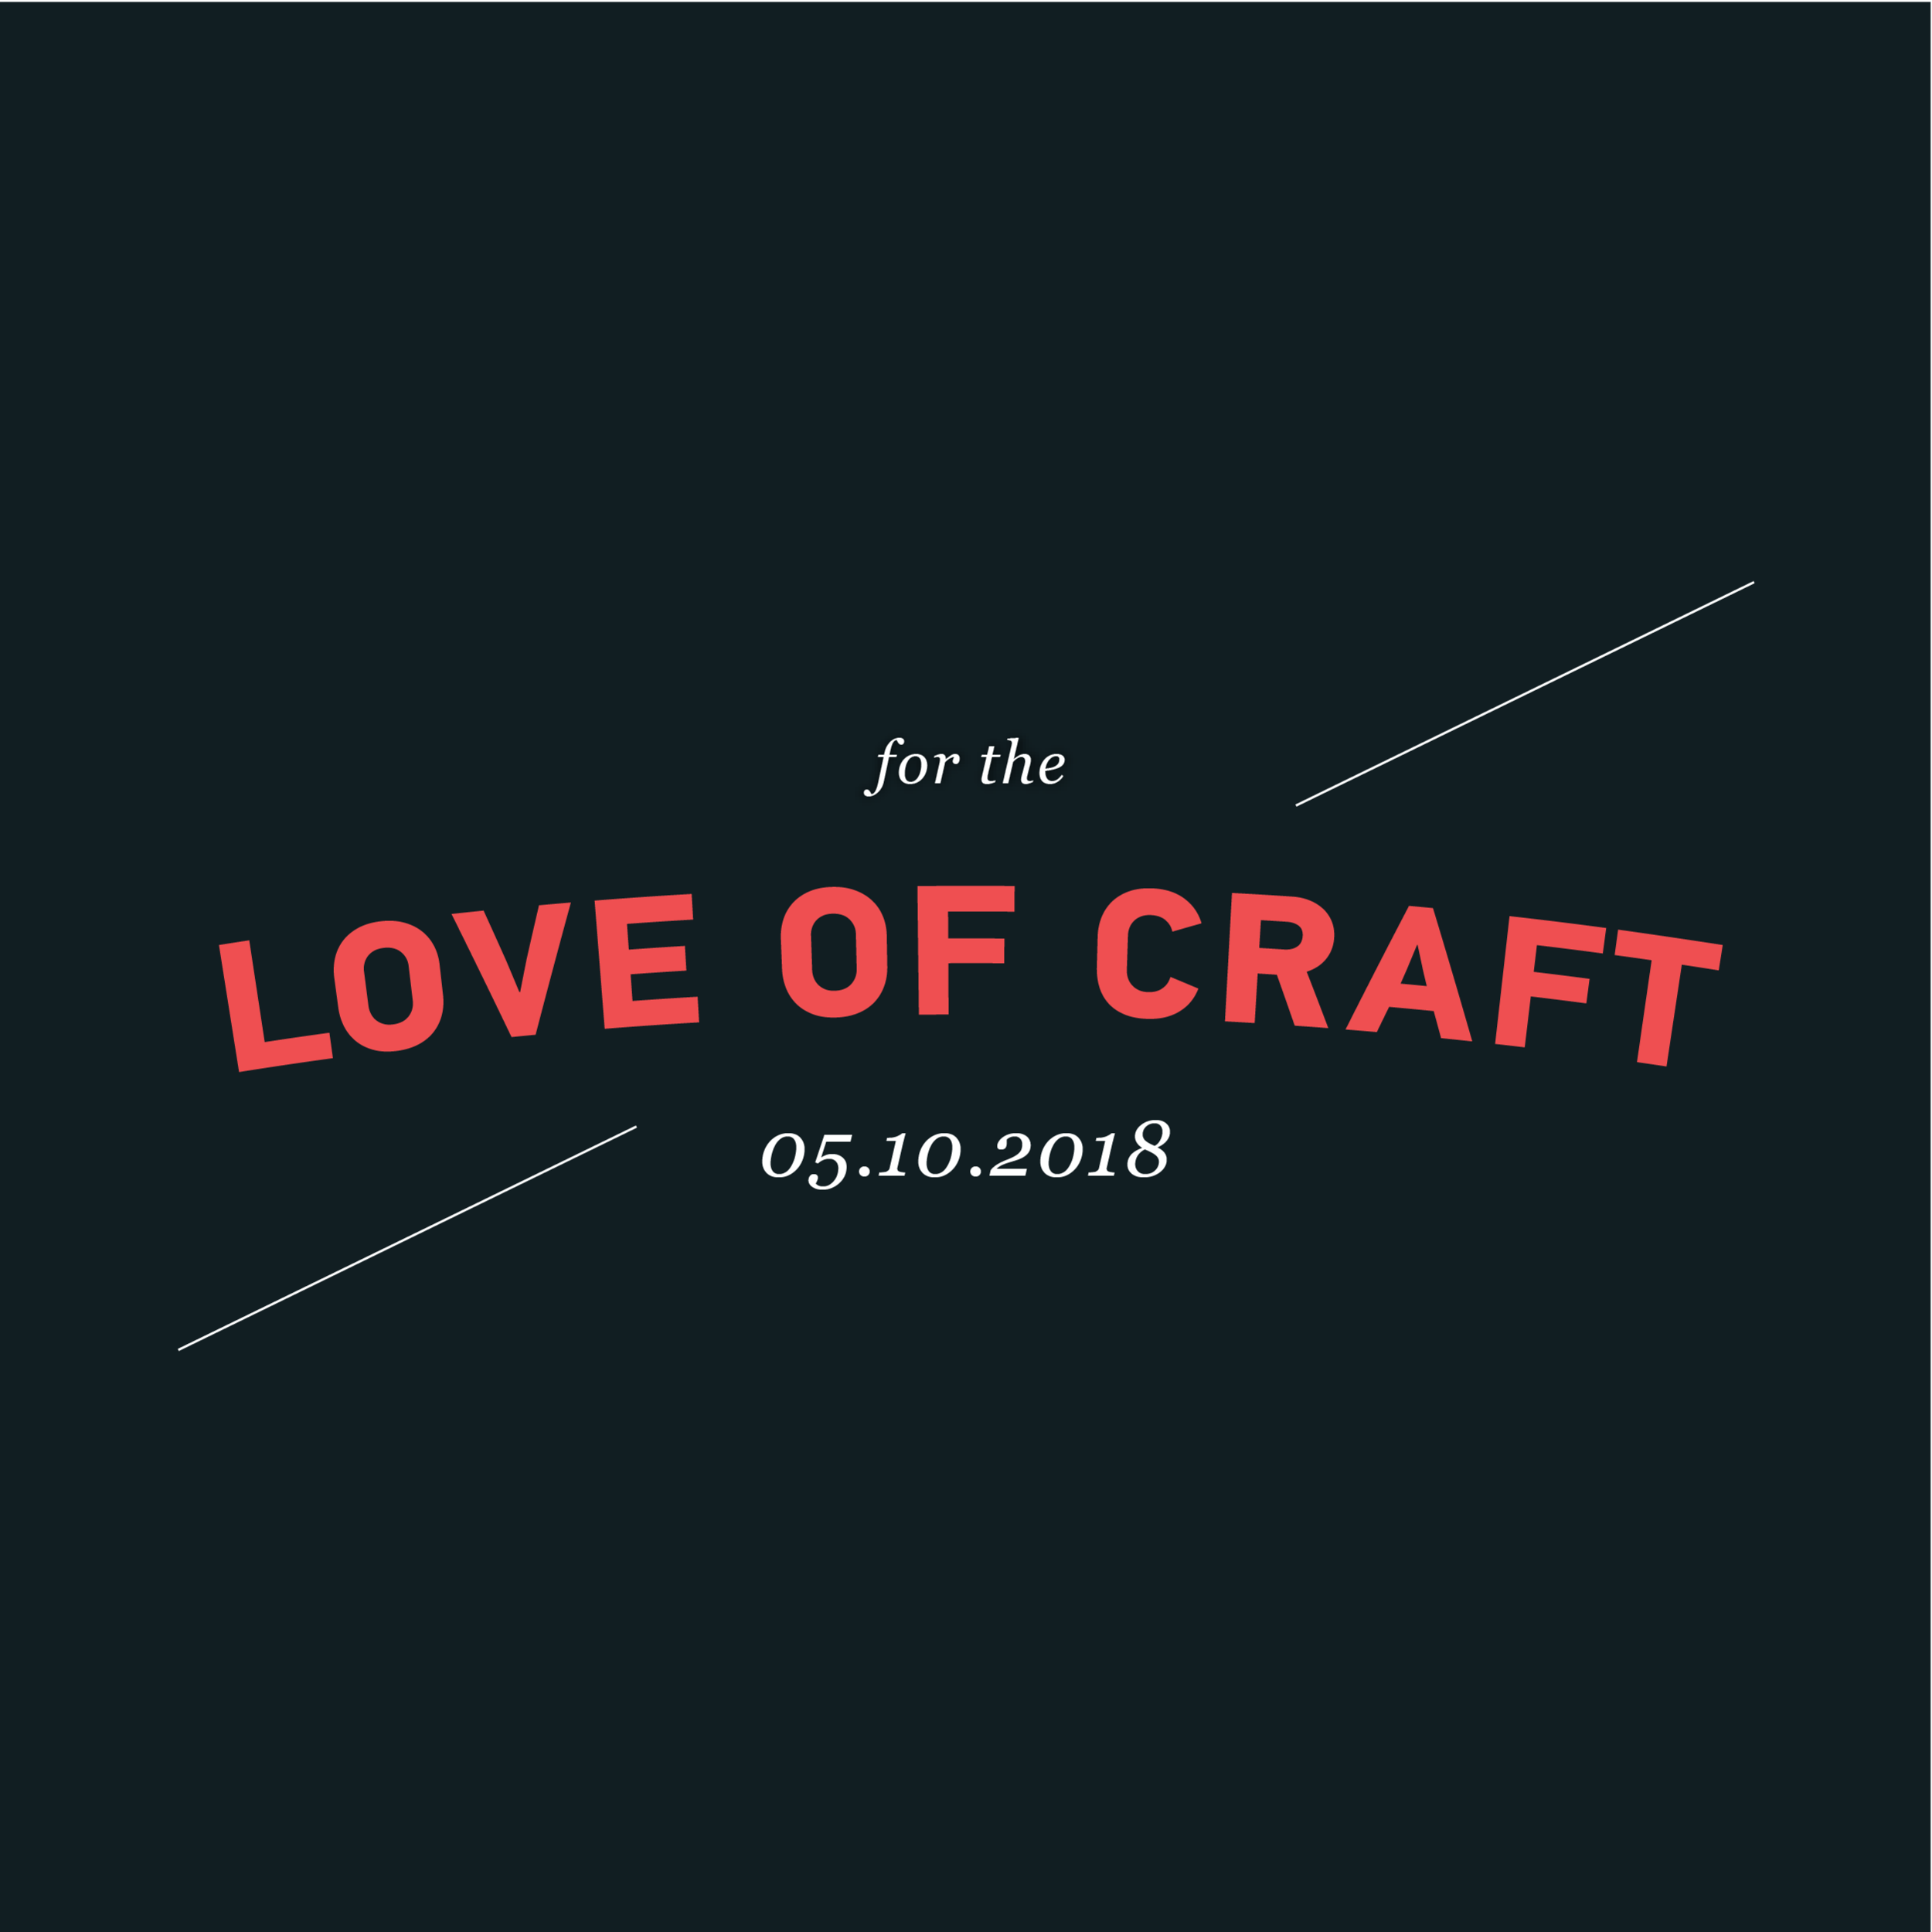 For The Love of Craft (event)